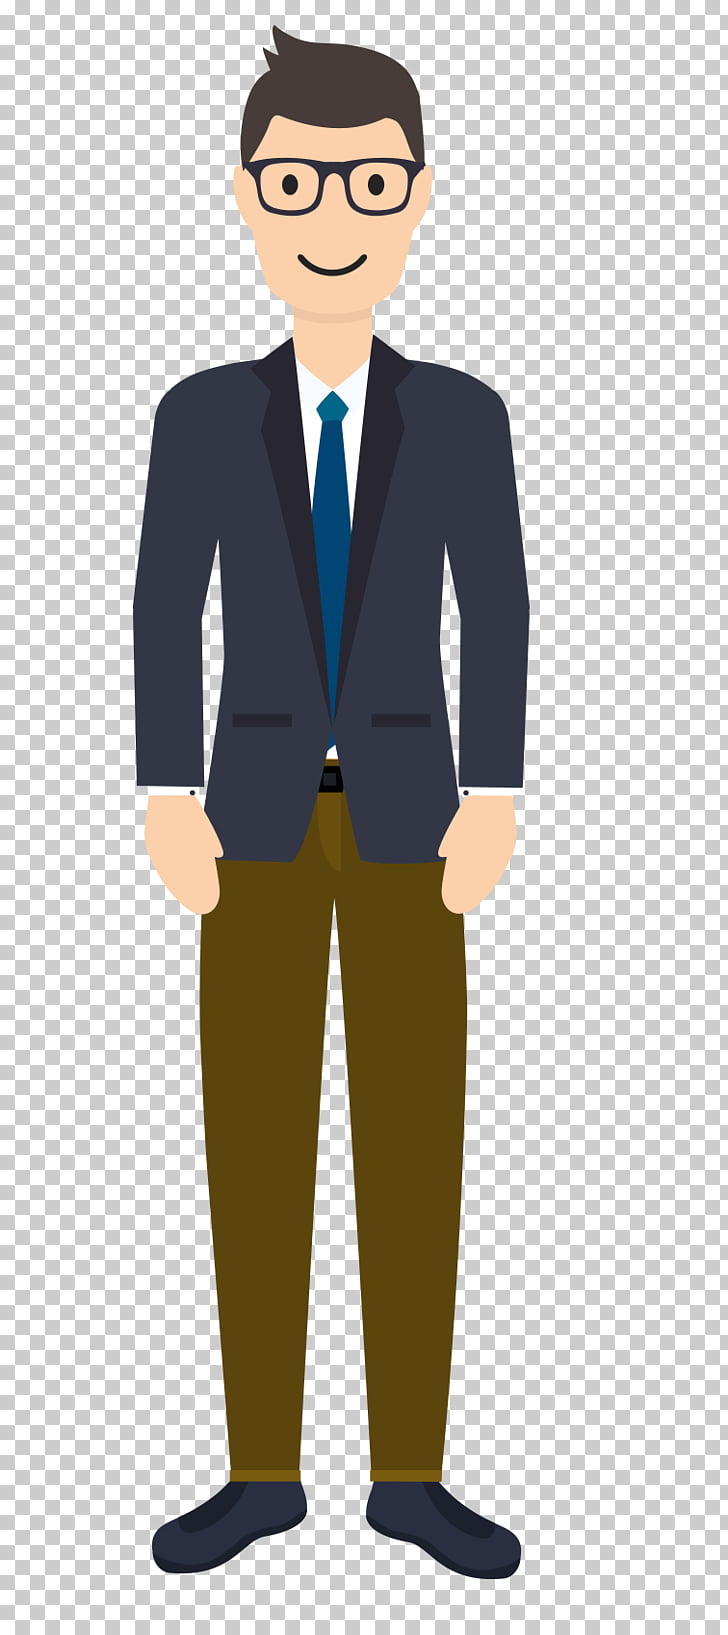 Suit, A man in a suit PNG clipart.